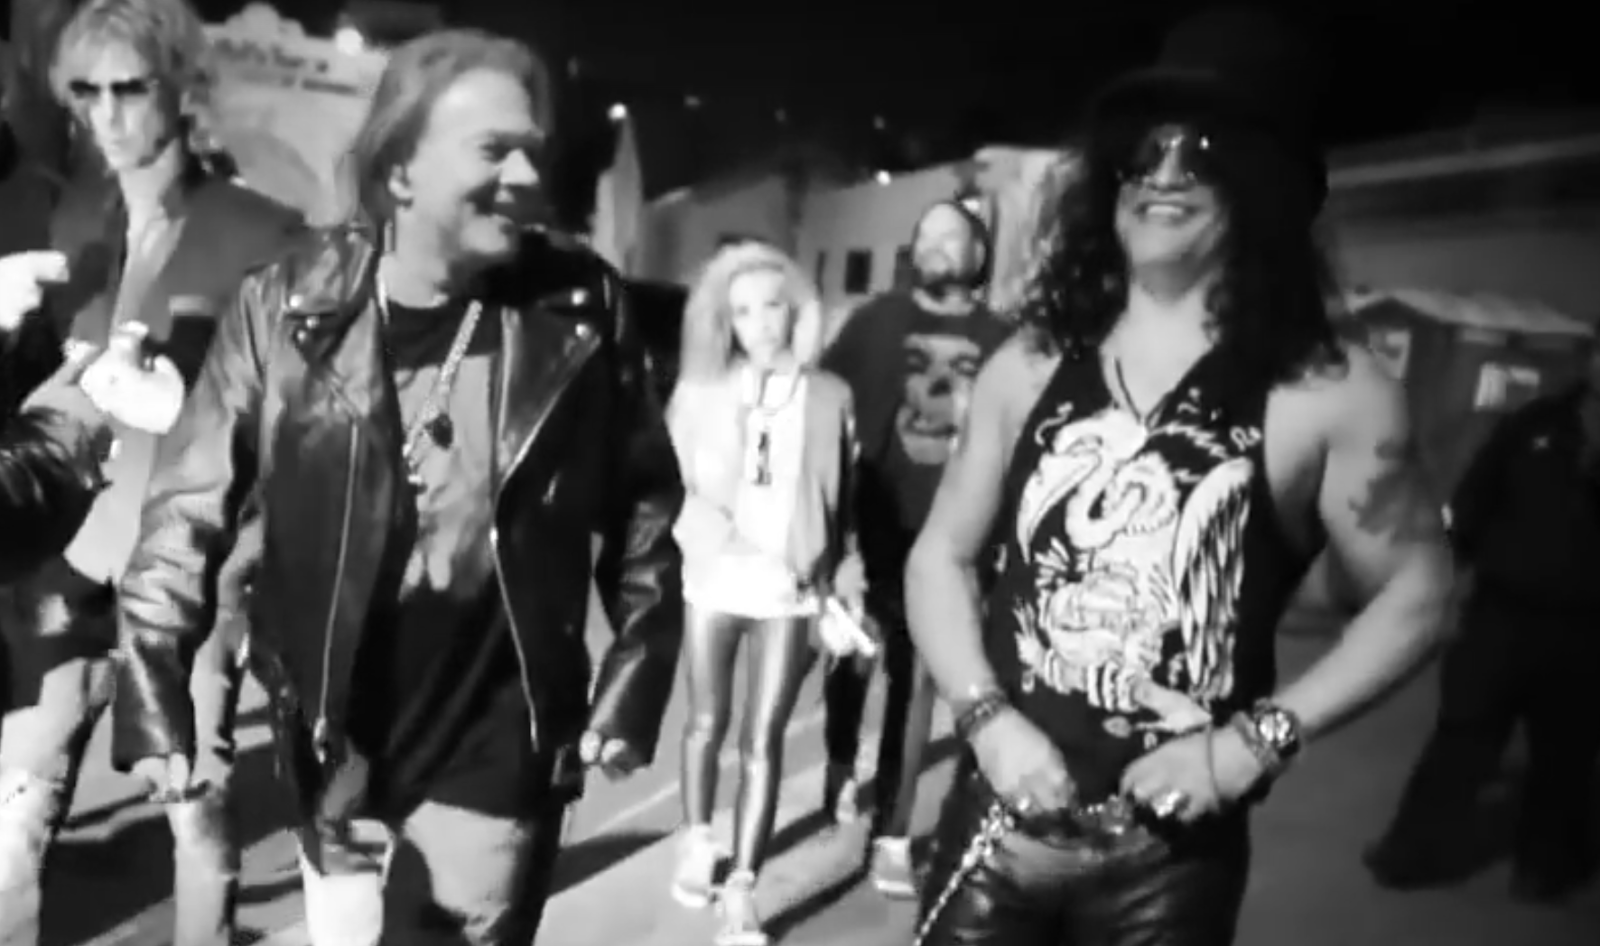 Guns N' Roses - Axl, Slash and Duff